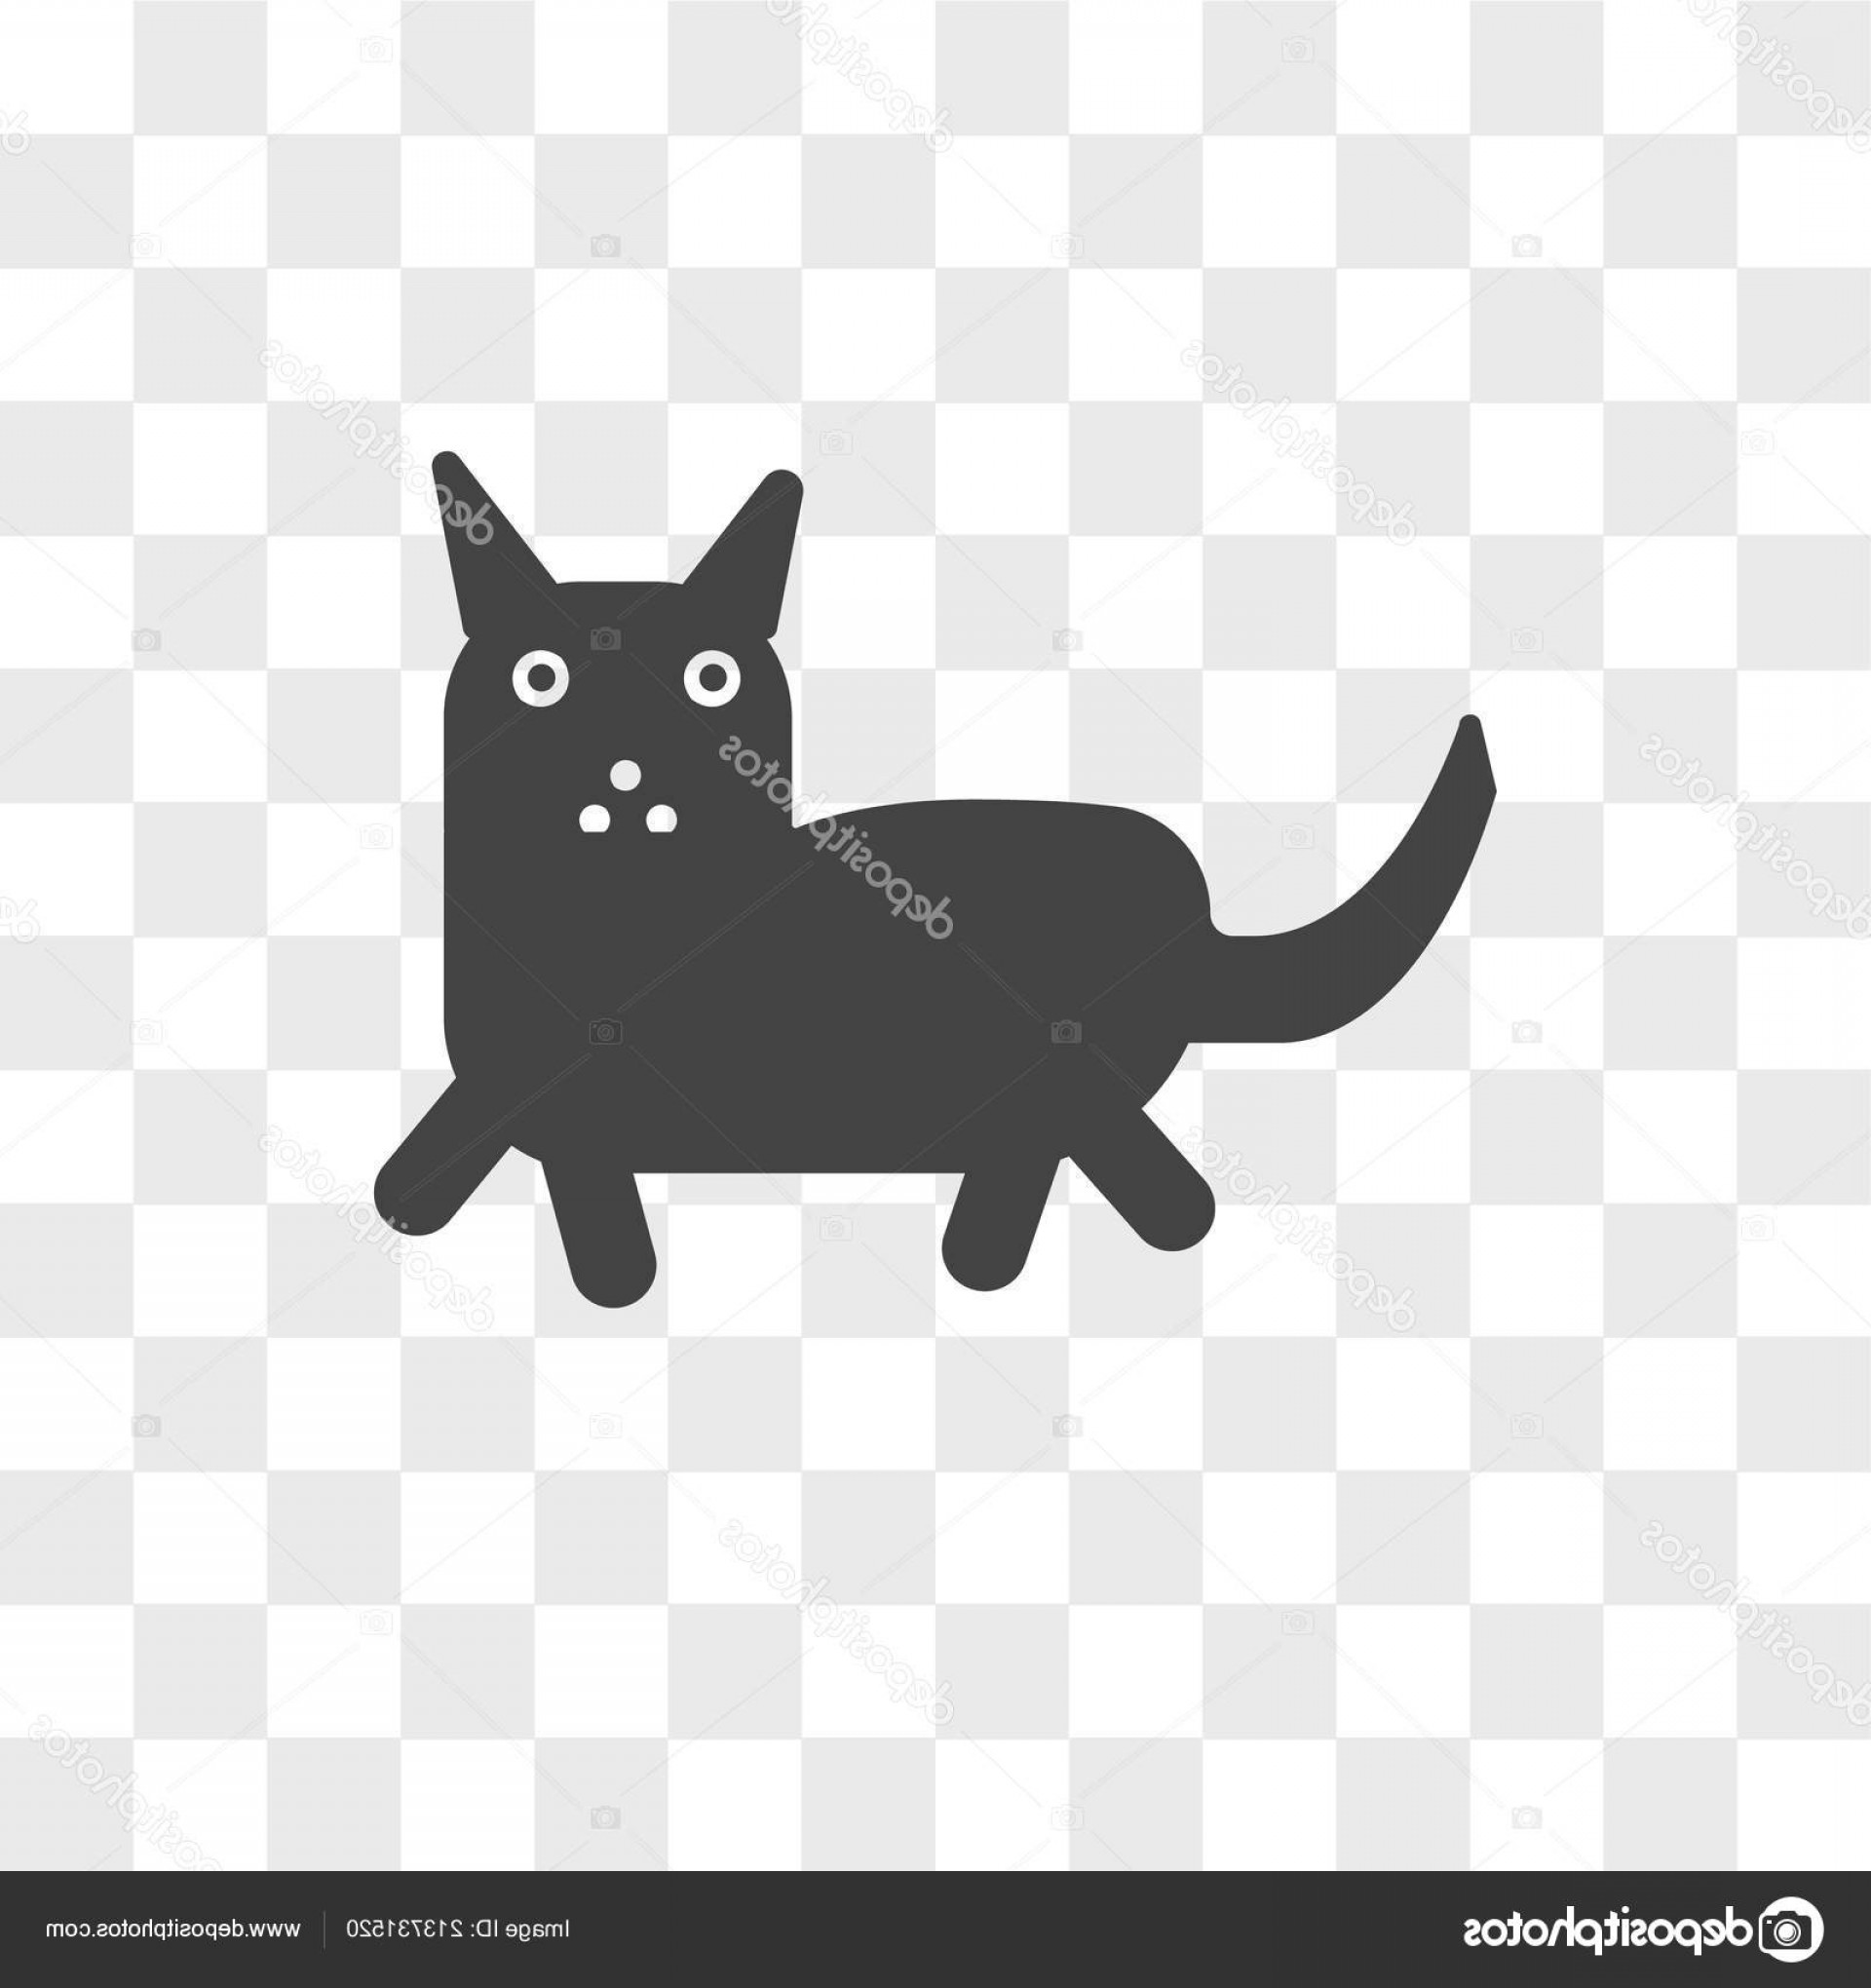 Siamese Cat Vector Transparent Background: Stock Illustration Siamese Cat Vector Icon Isolated